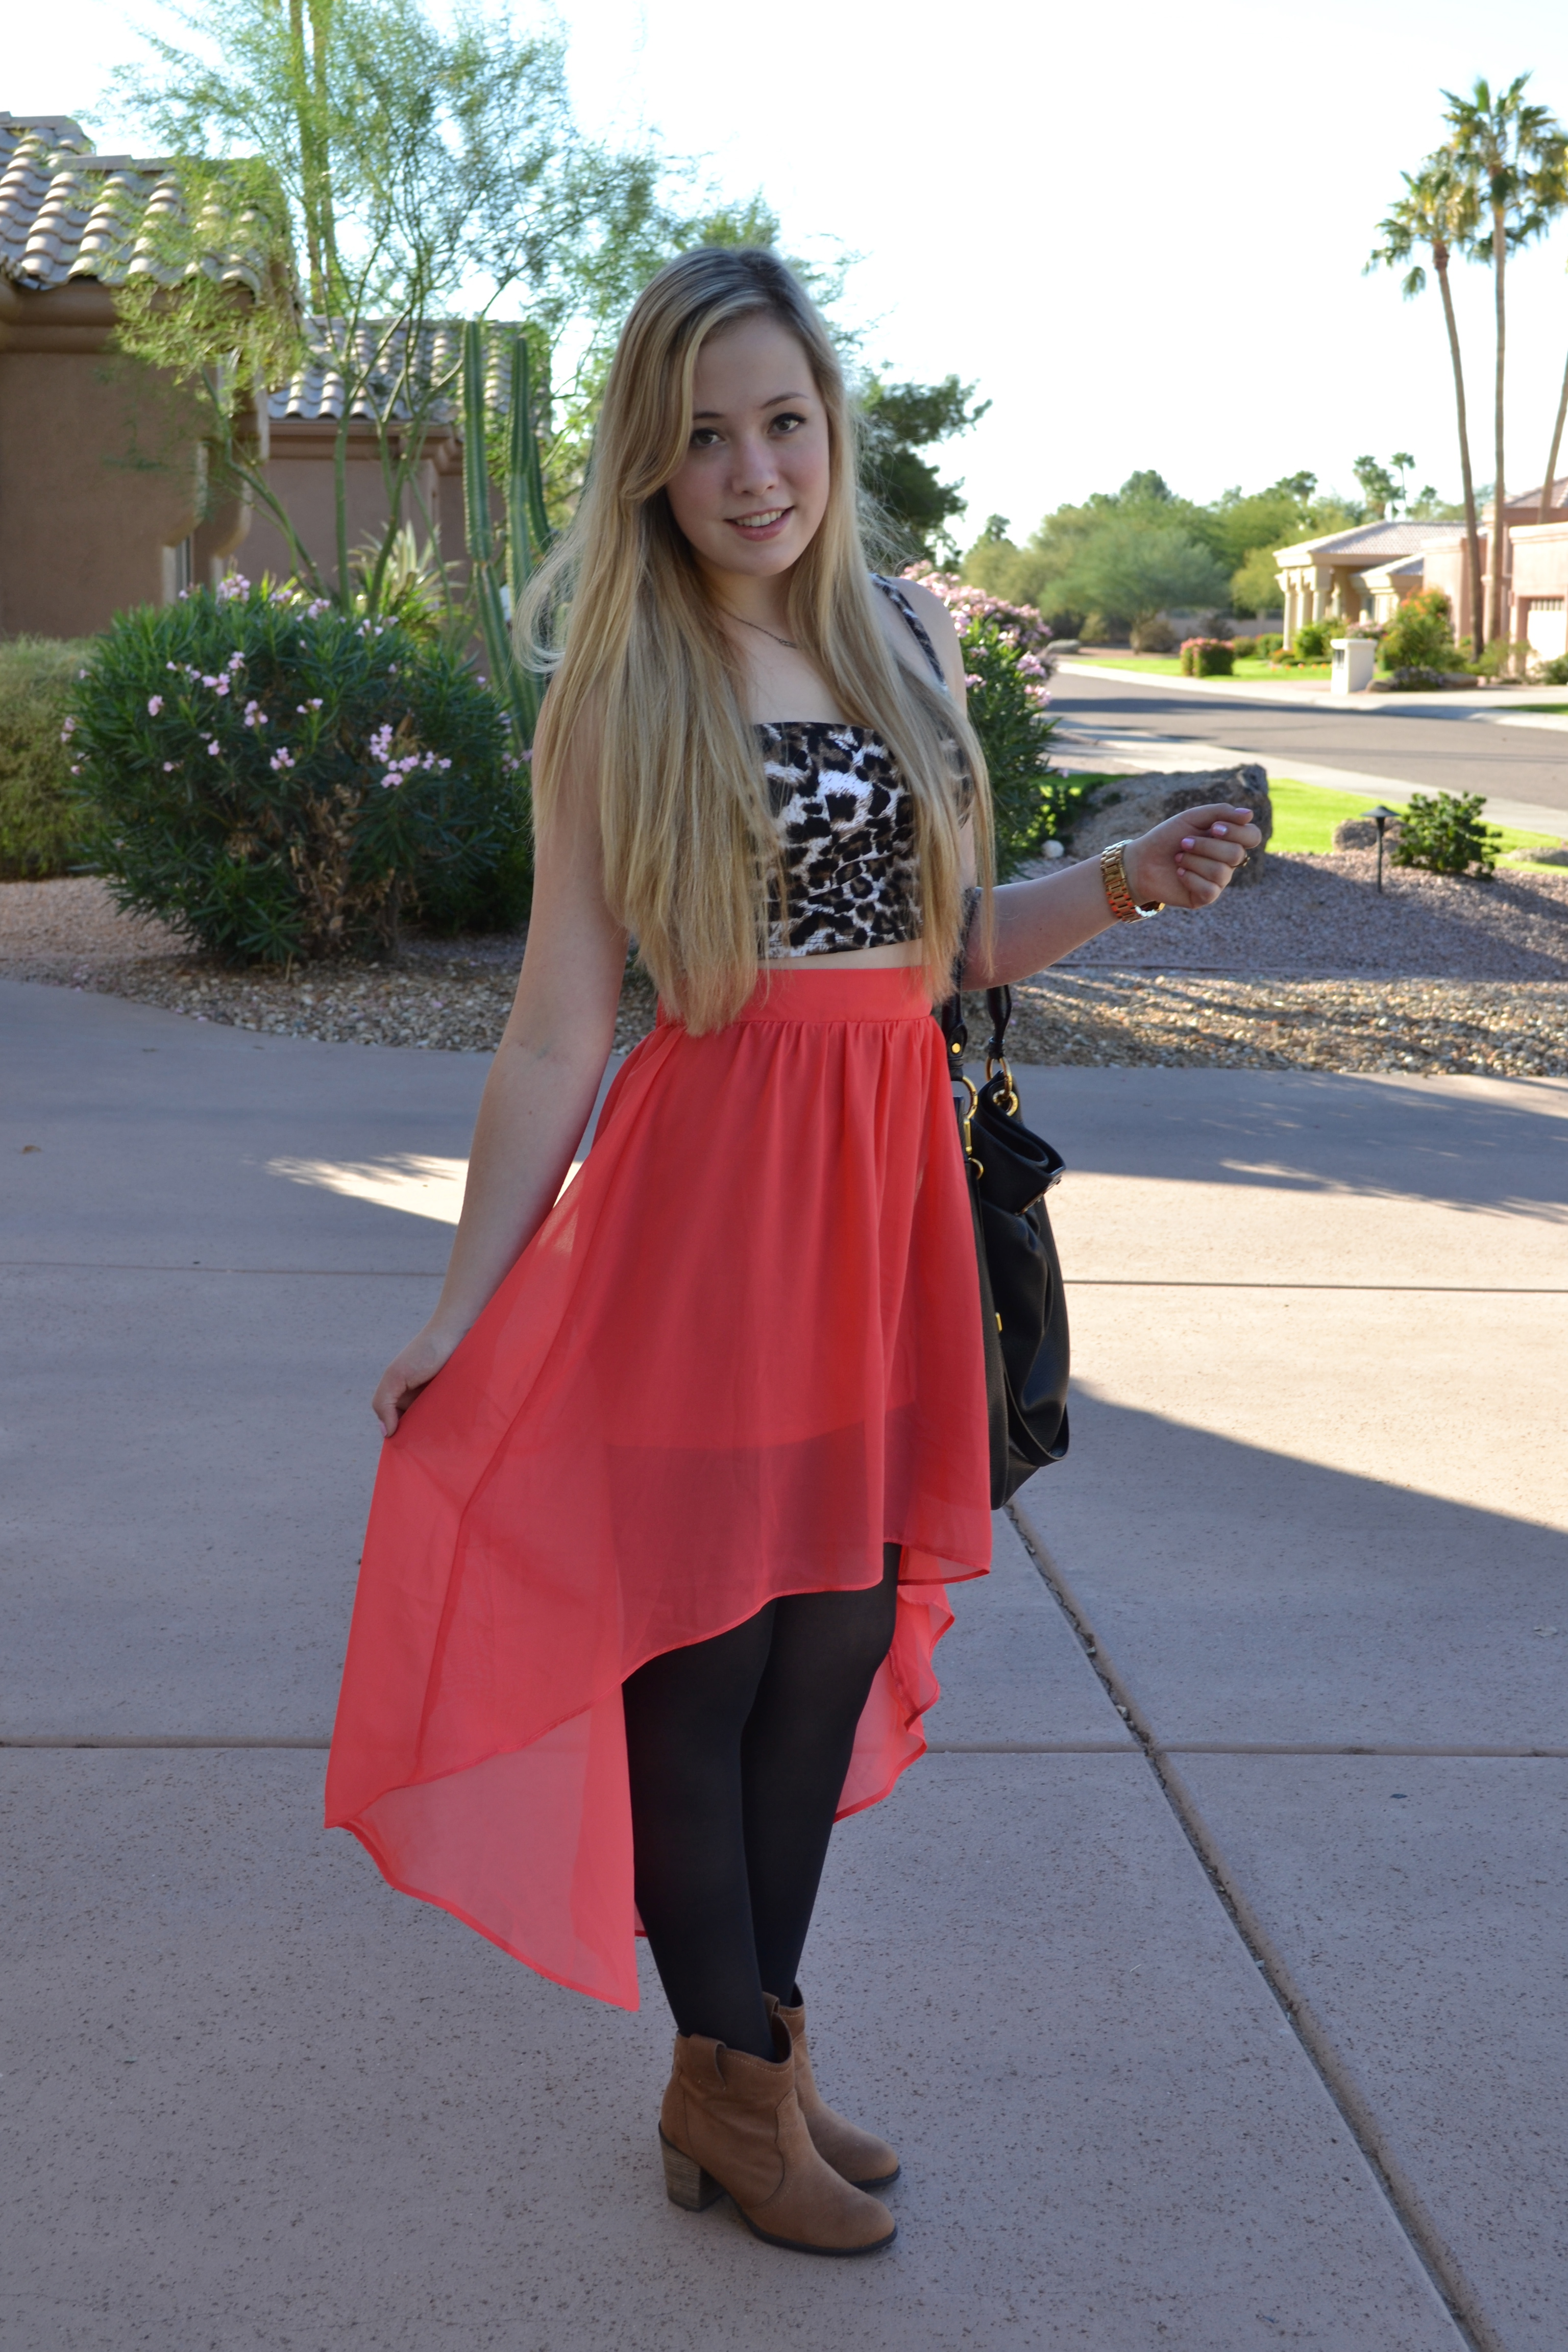 Skirt low High outfits pictures best photo